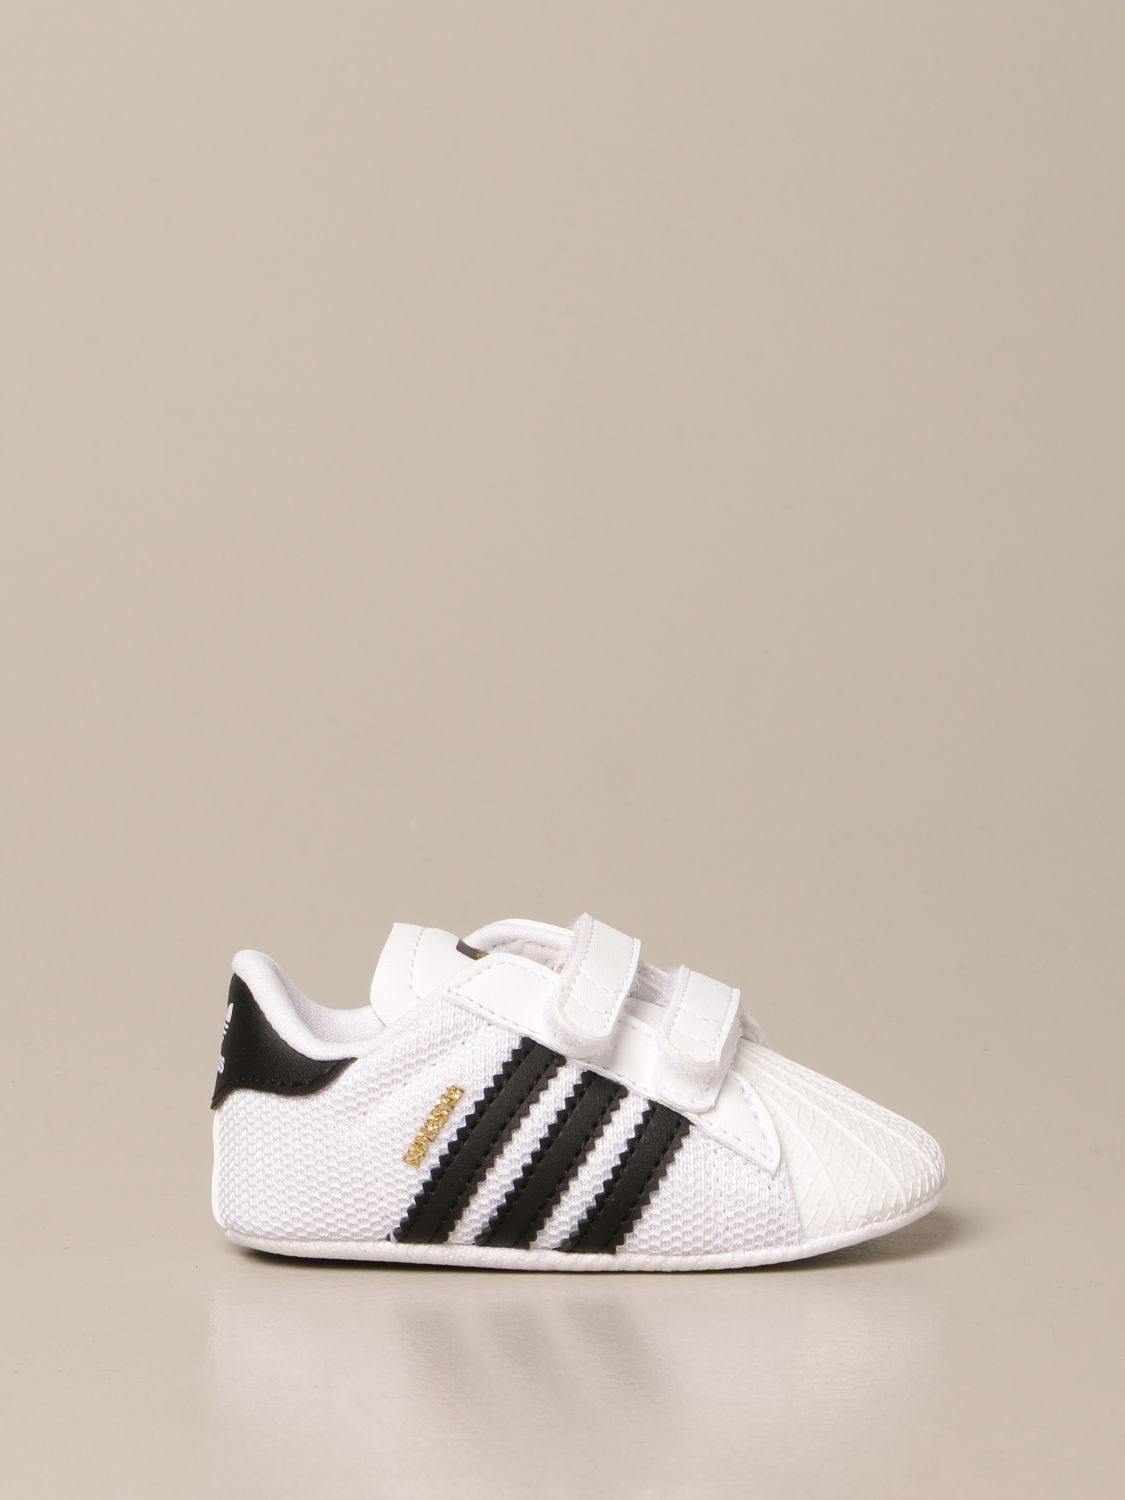 Zapatos Adidas Originals: Zapatos niños Adidas Originals blanco 1